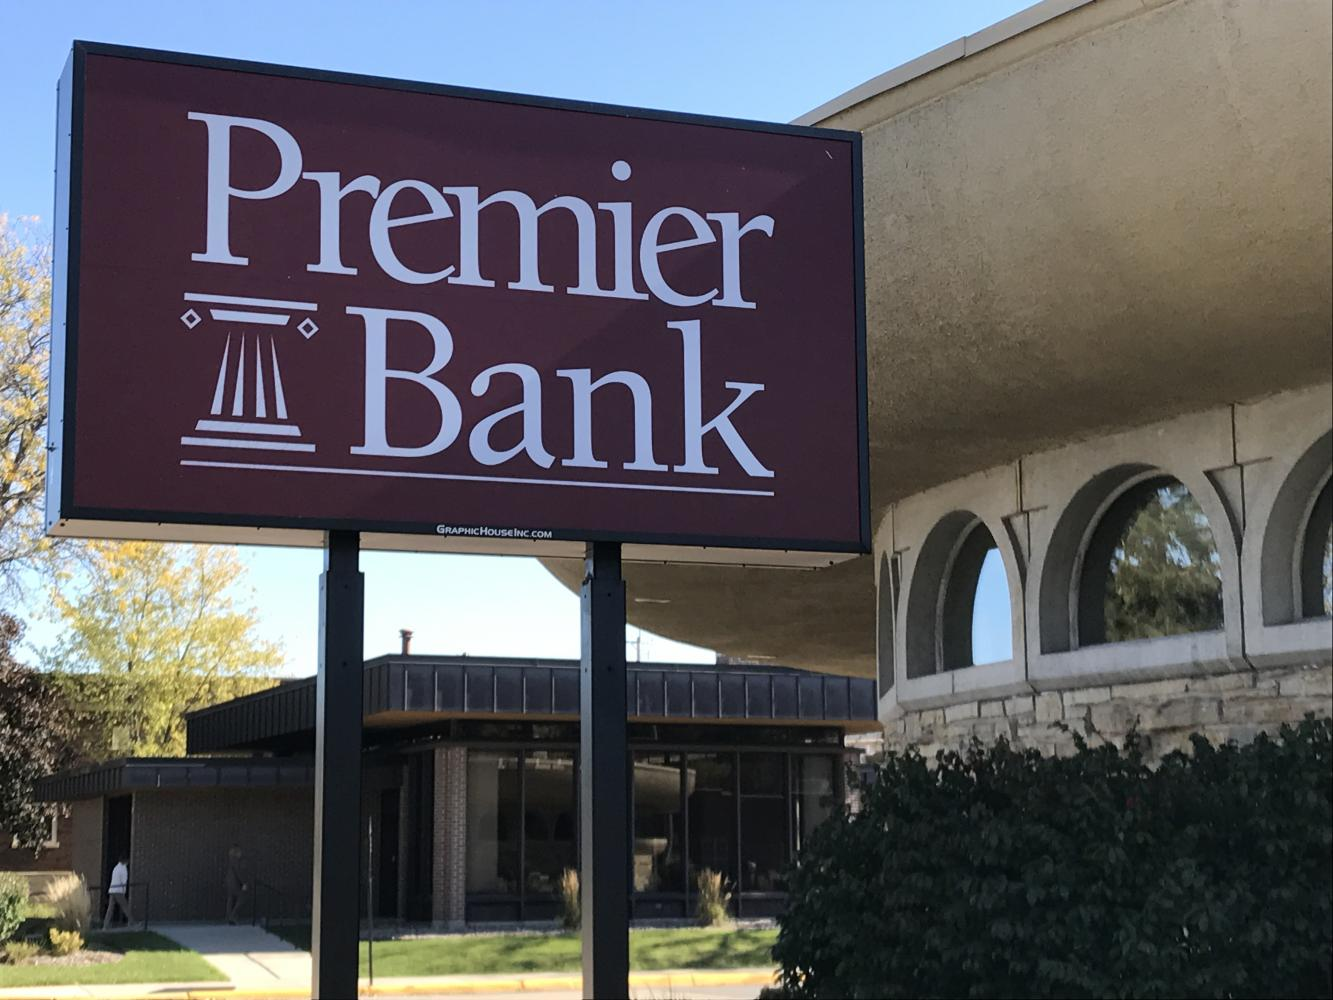 premier bank Swift code equivalent swift/bic codes swift code breakdown bank name & address prmrbddhbnn: prmrbddh bnn prmr bd dh bnn: bank code: prmr country code: bd location code: dh branch code :bnn the premier bank limited.